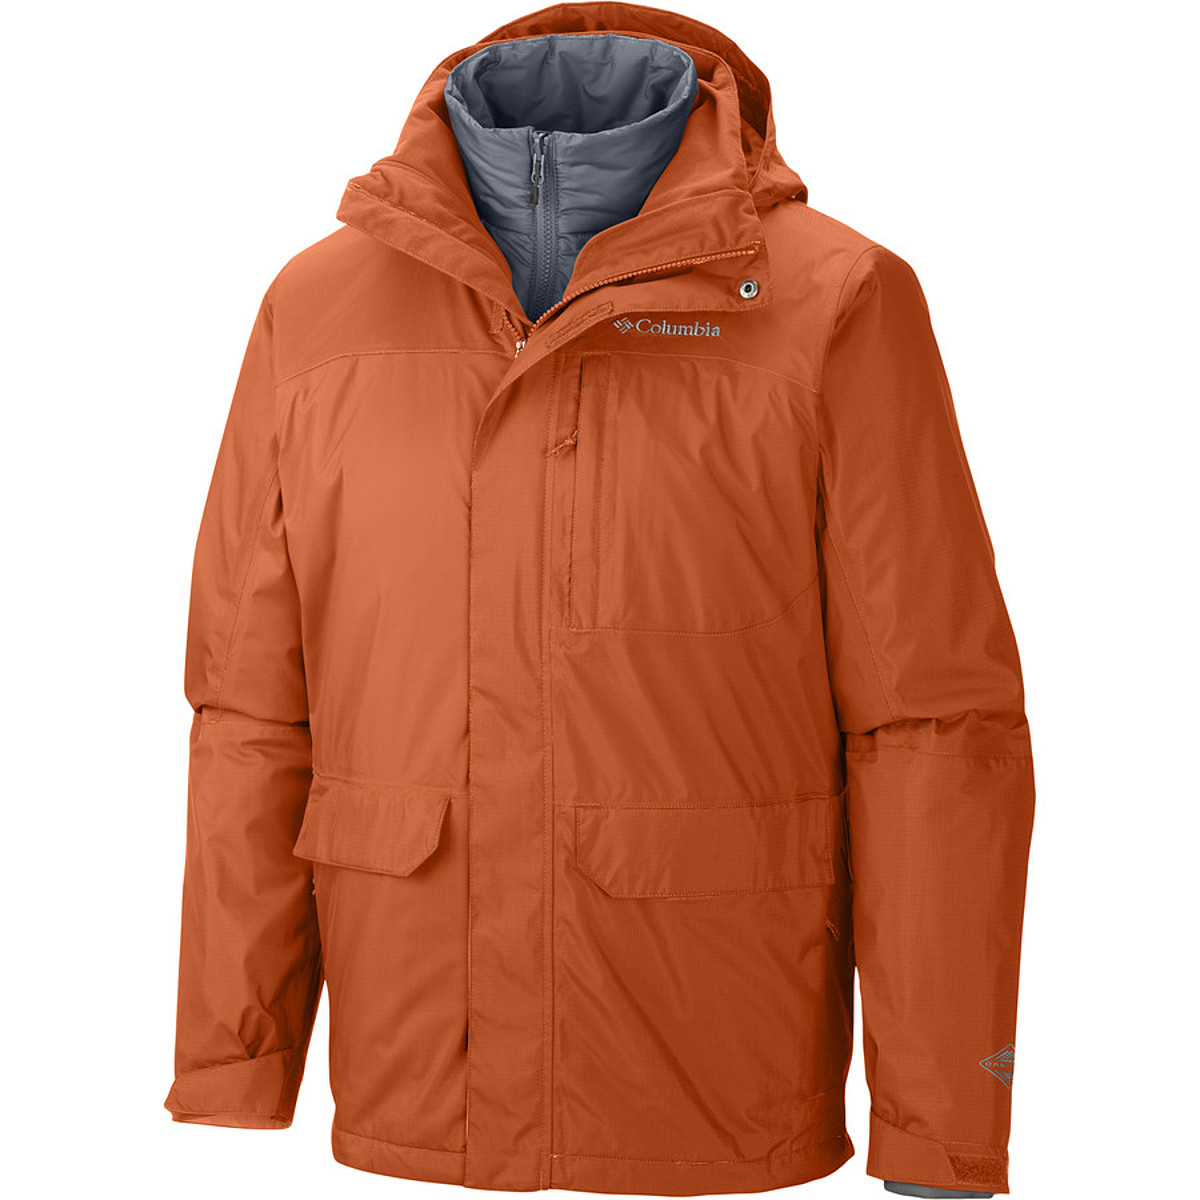 Columbia South Peak Interchange Jacket